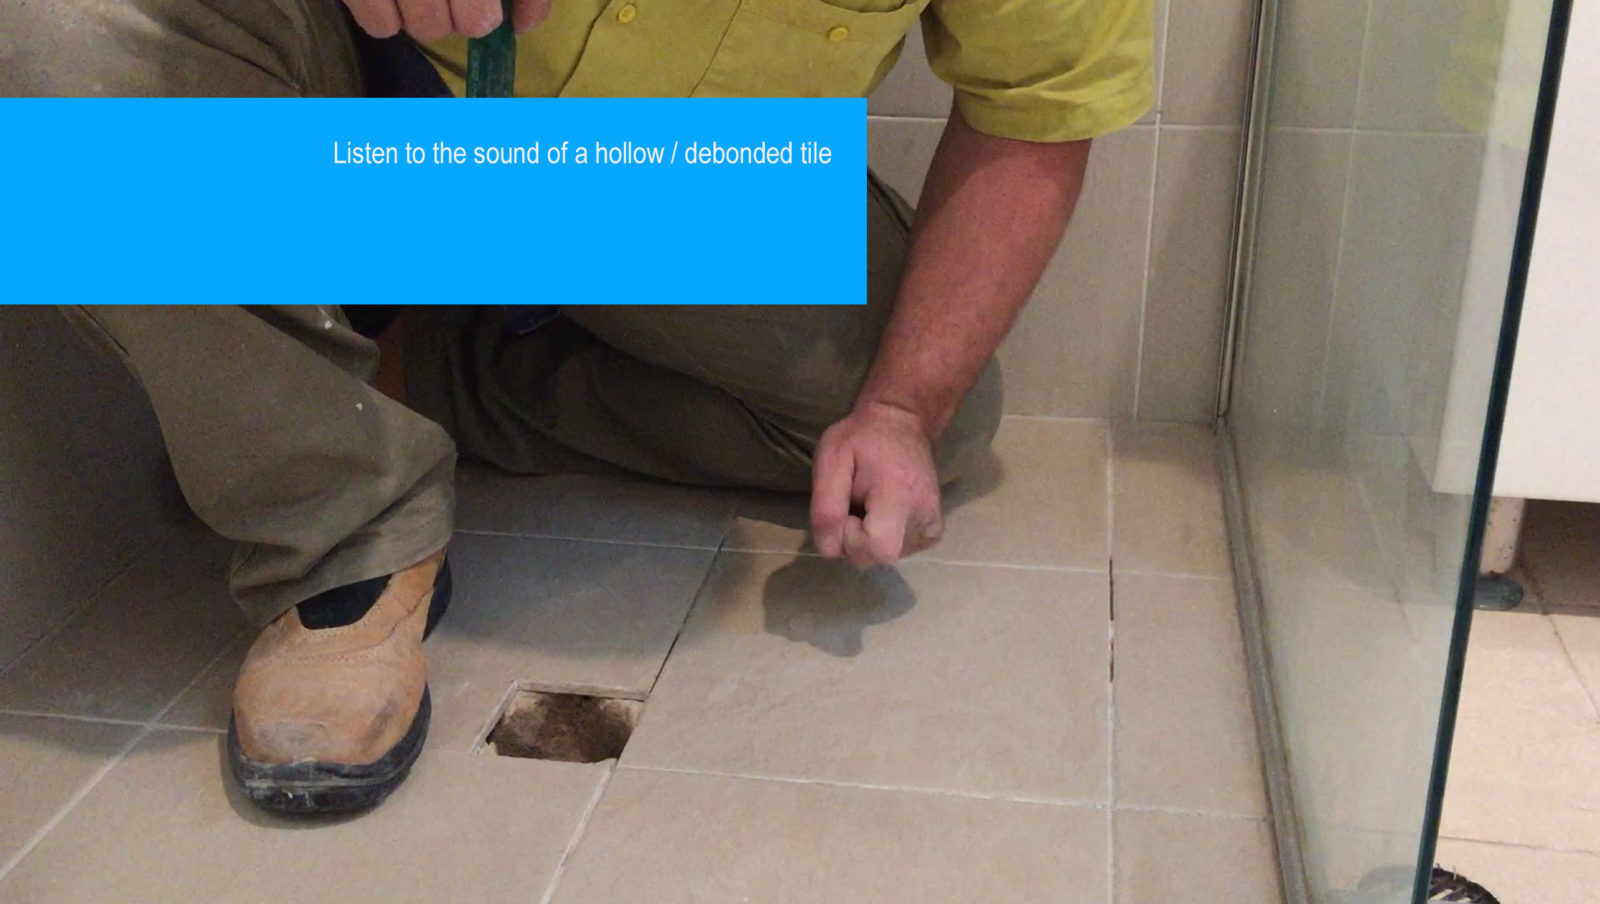 Drummy floor tile sounding video, listen to hollow sound tile vs the solid bonded tile sound